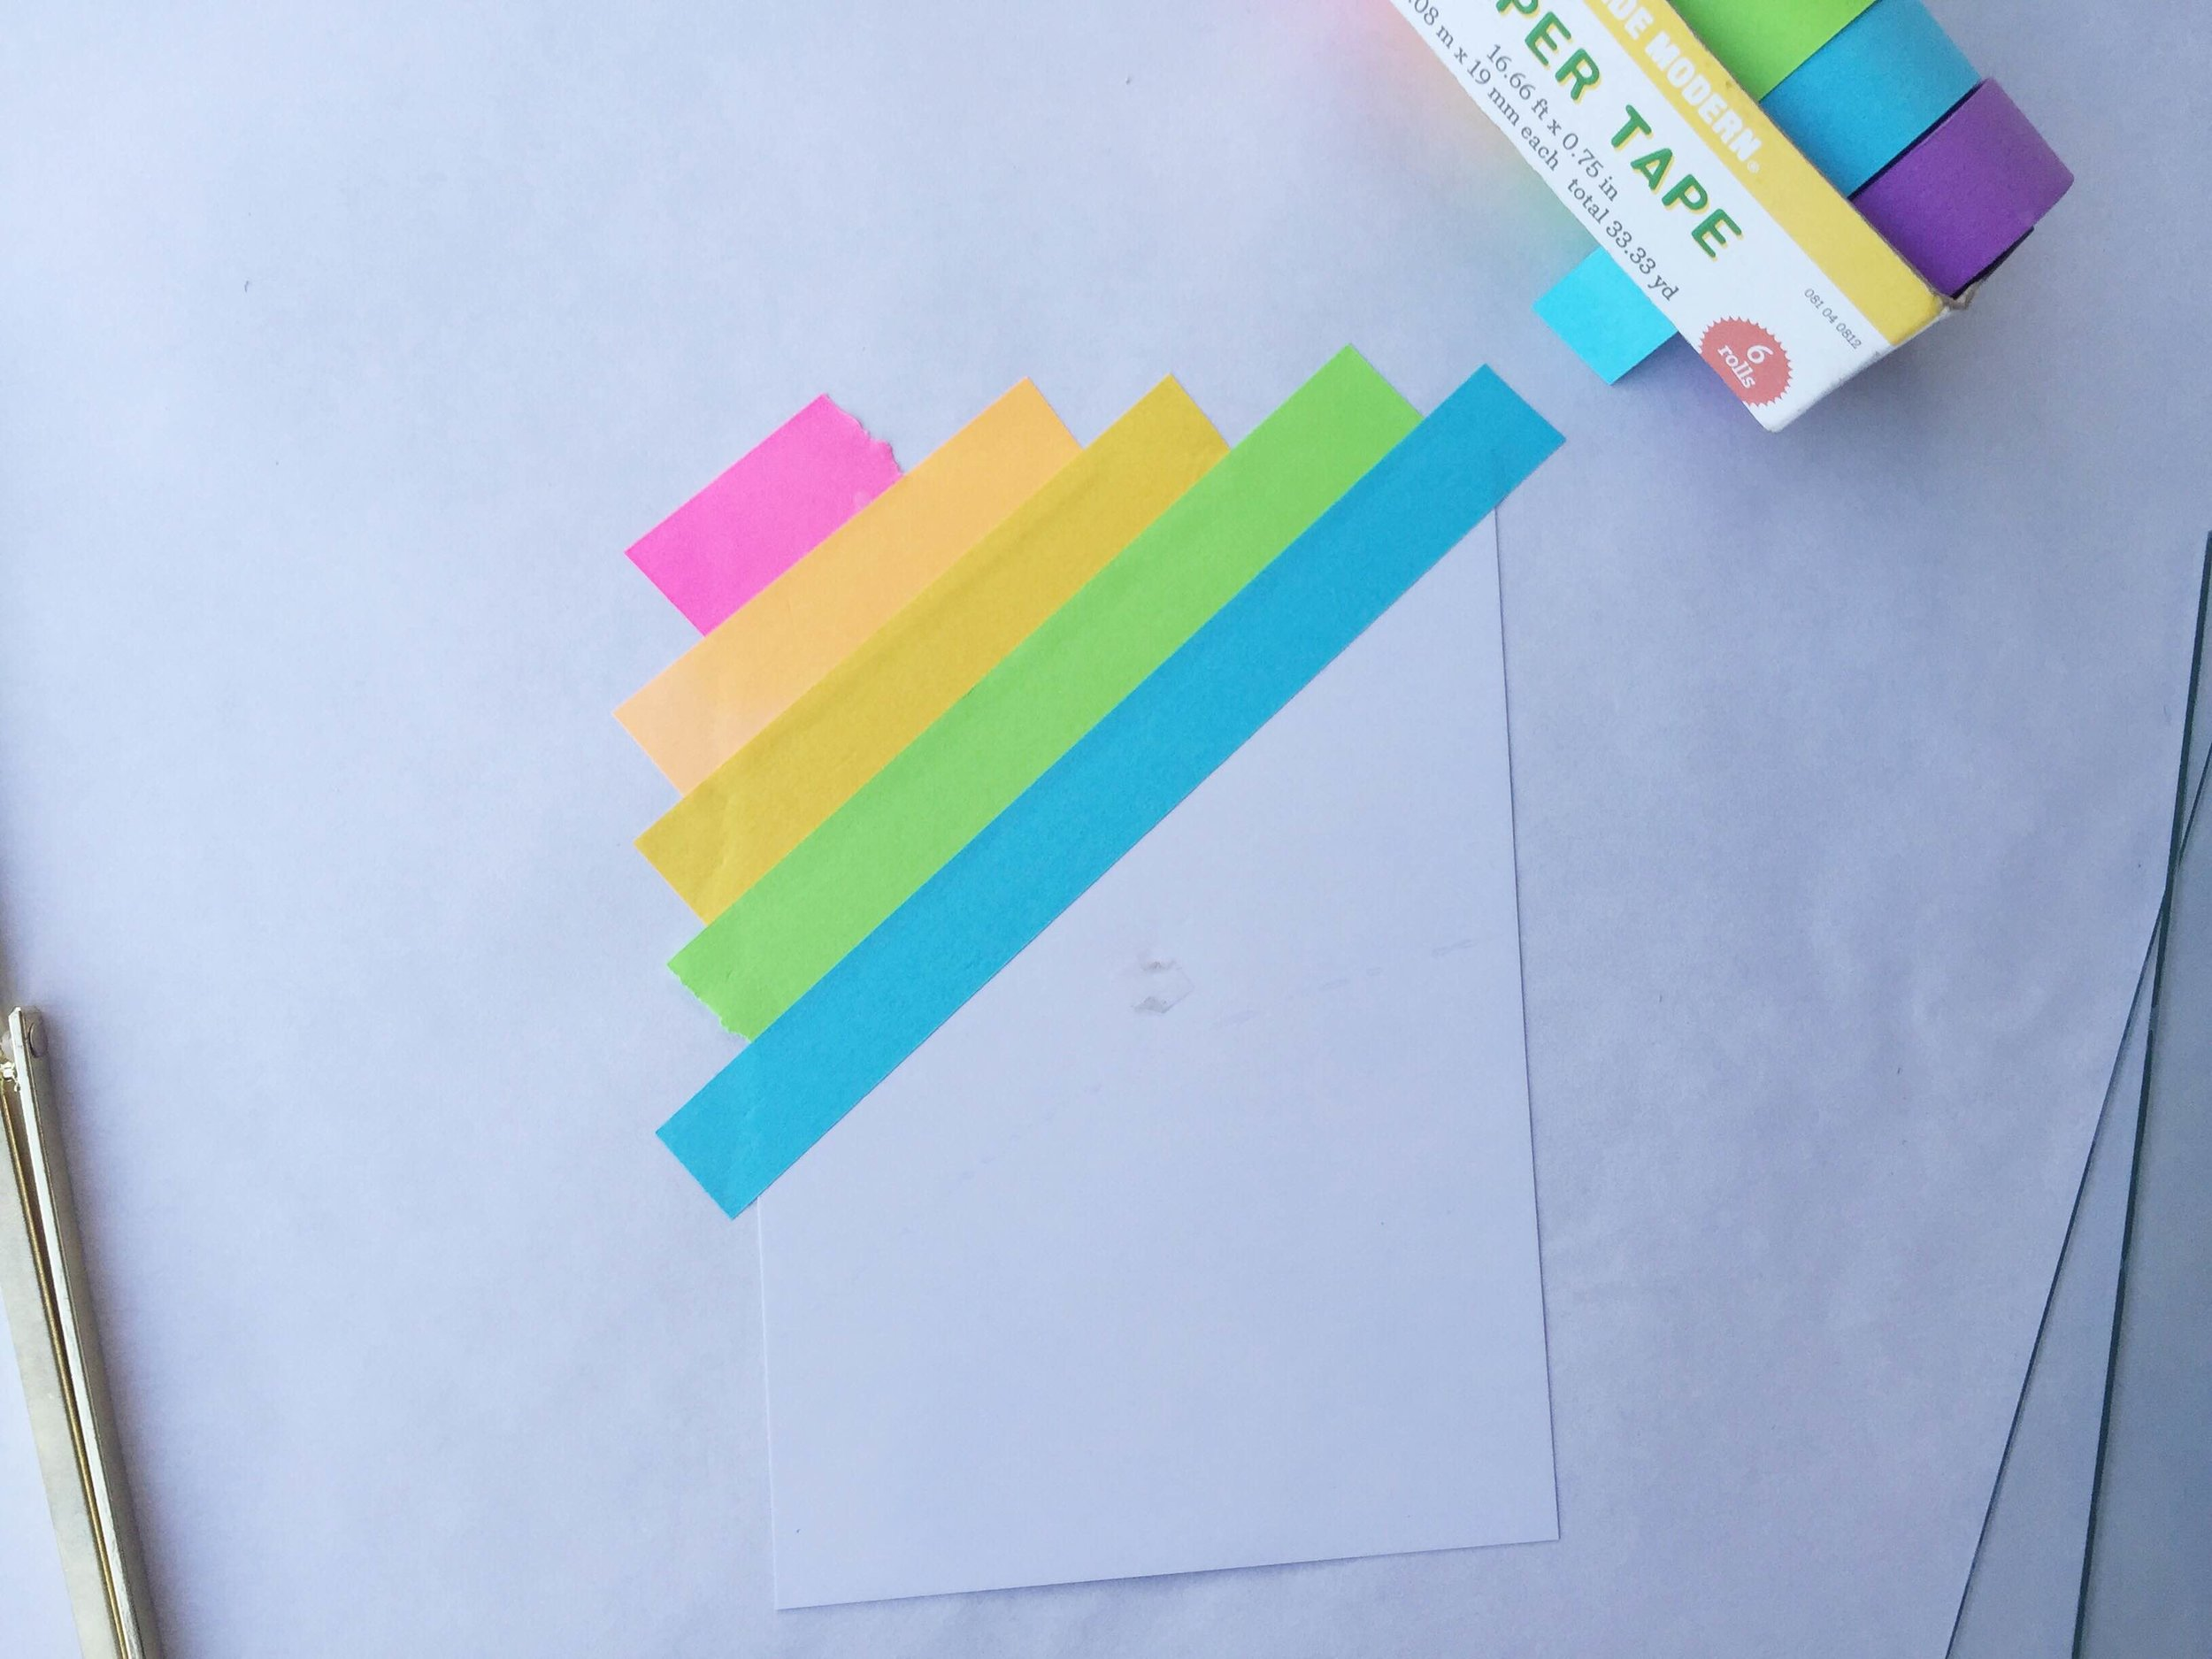 rainbow-tape-diy-middle.JPG